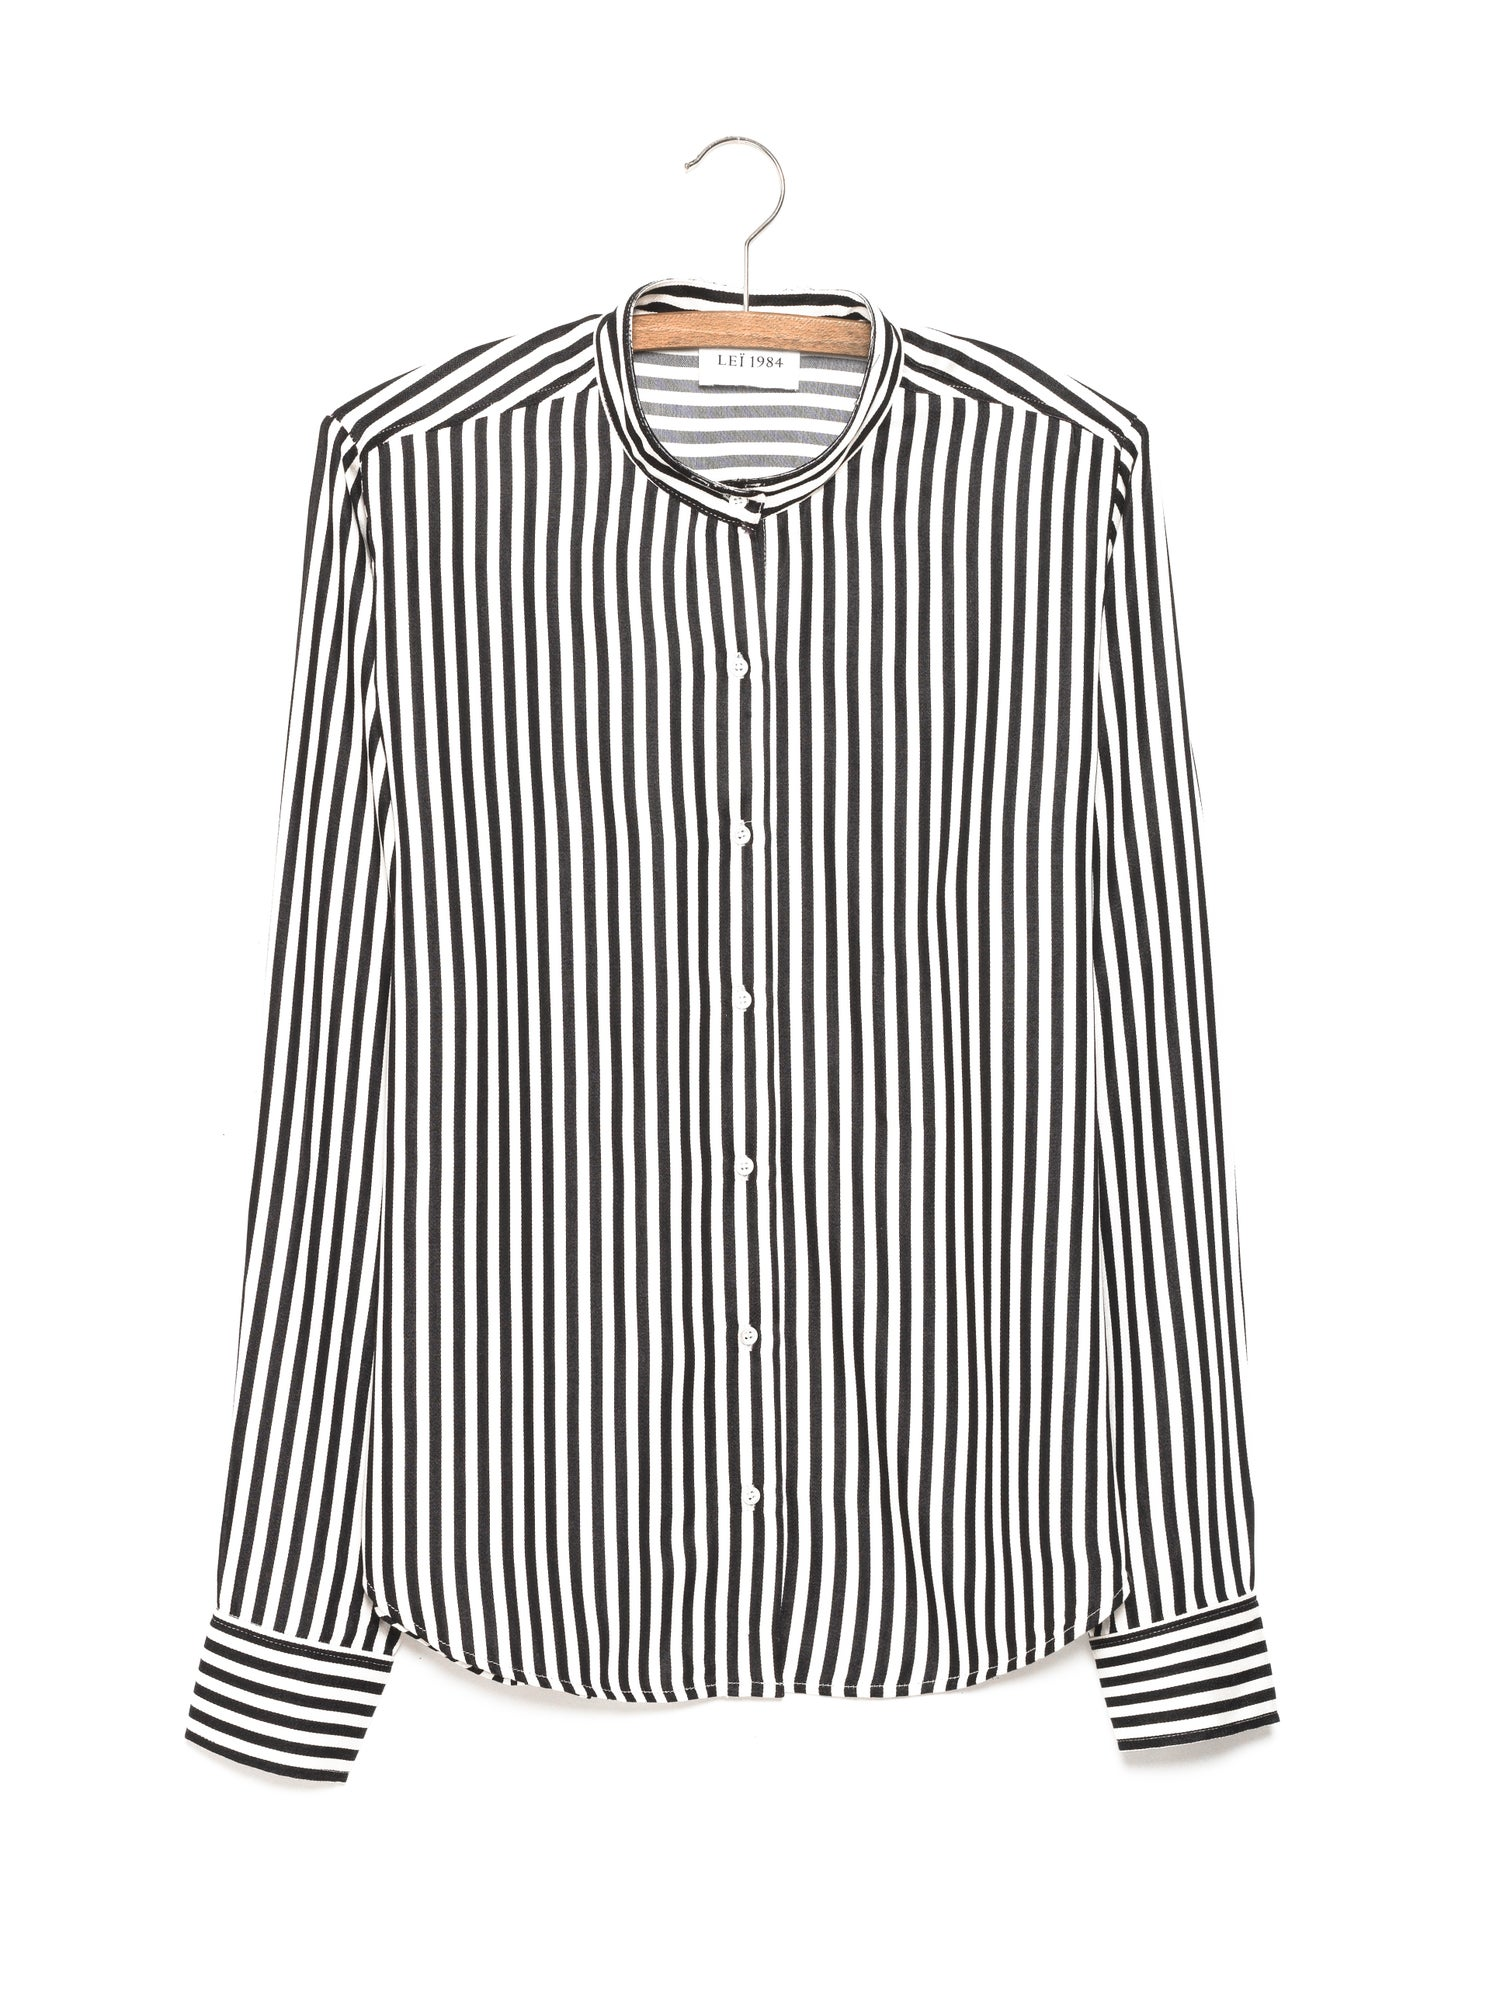 Image of Chemise col mao rayée ANNE 115€ -30%